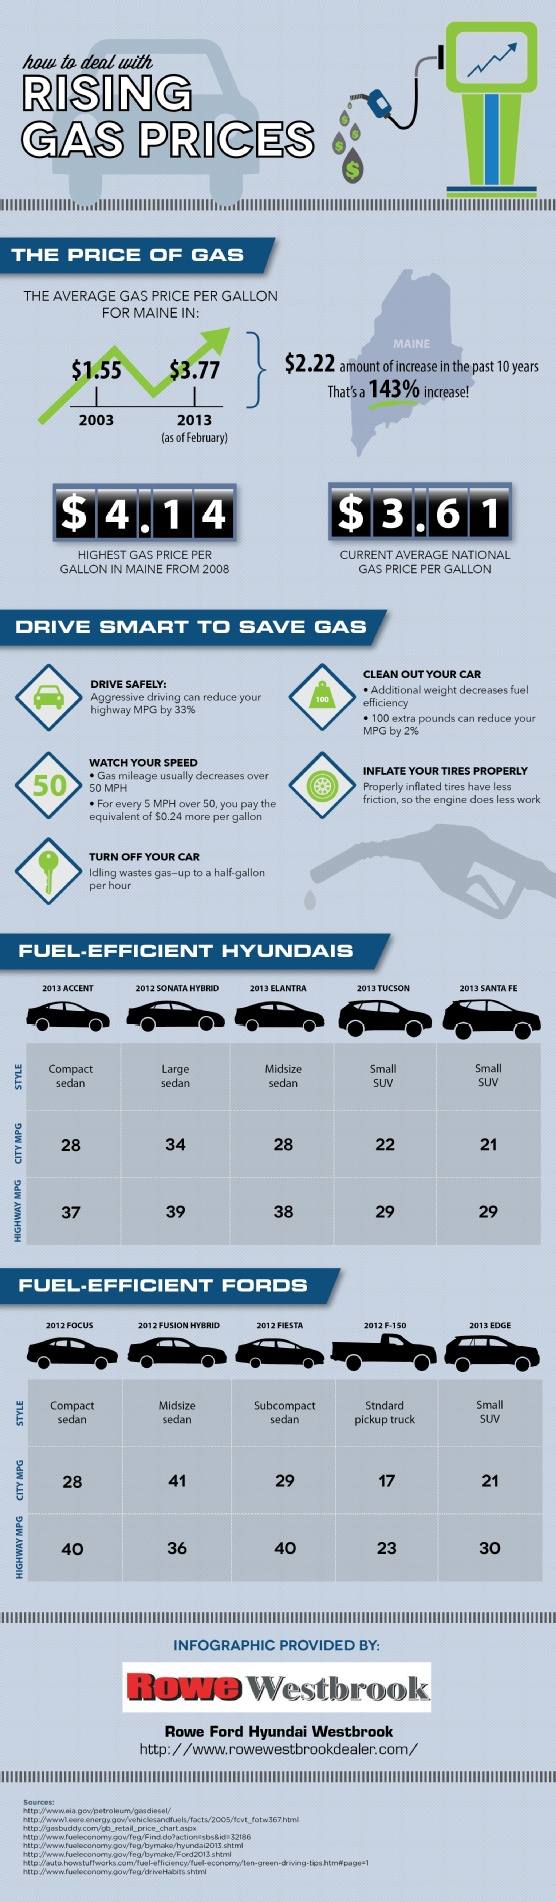 Idling the car may seem like a good idea, but this habit wastes gas. If you want to learn how to save gas, spend less, and find a fuel-efficient car, take a look at this Ford and Hyundai infographic. Source: http://www.rowewestbrookdealer.com/665475/2013/03/18/how-to-deal-with-rising-gas-prices-infographic.html